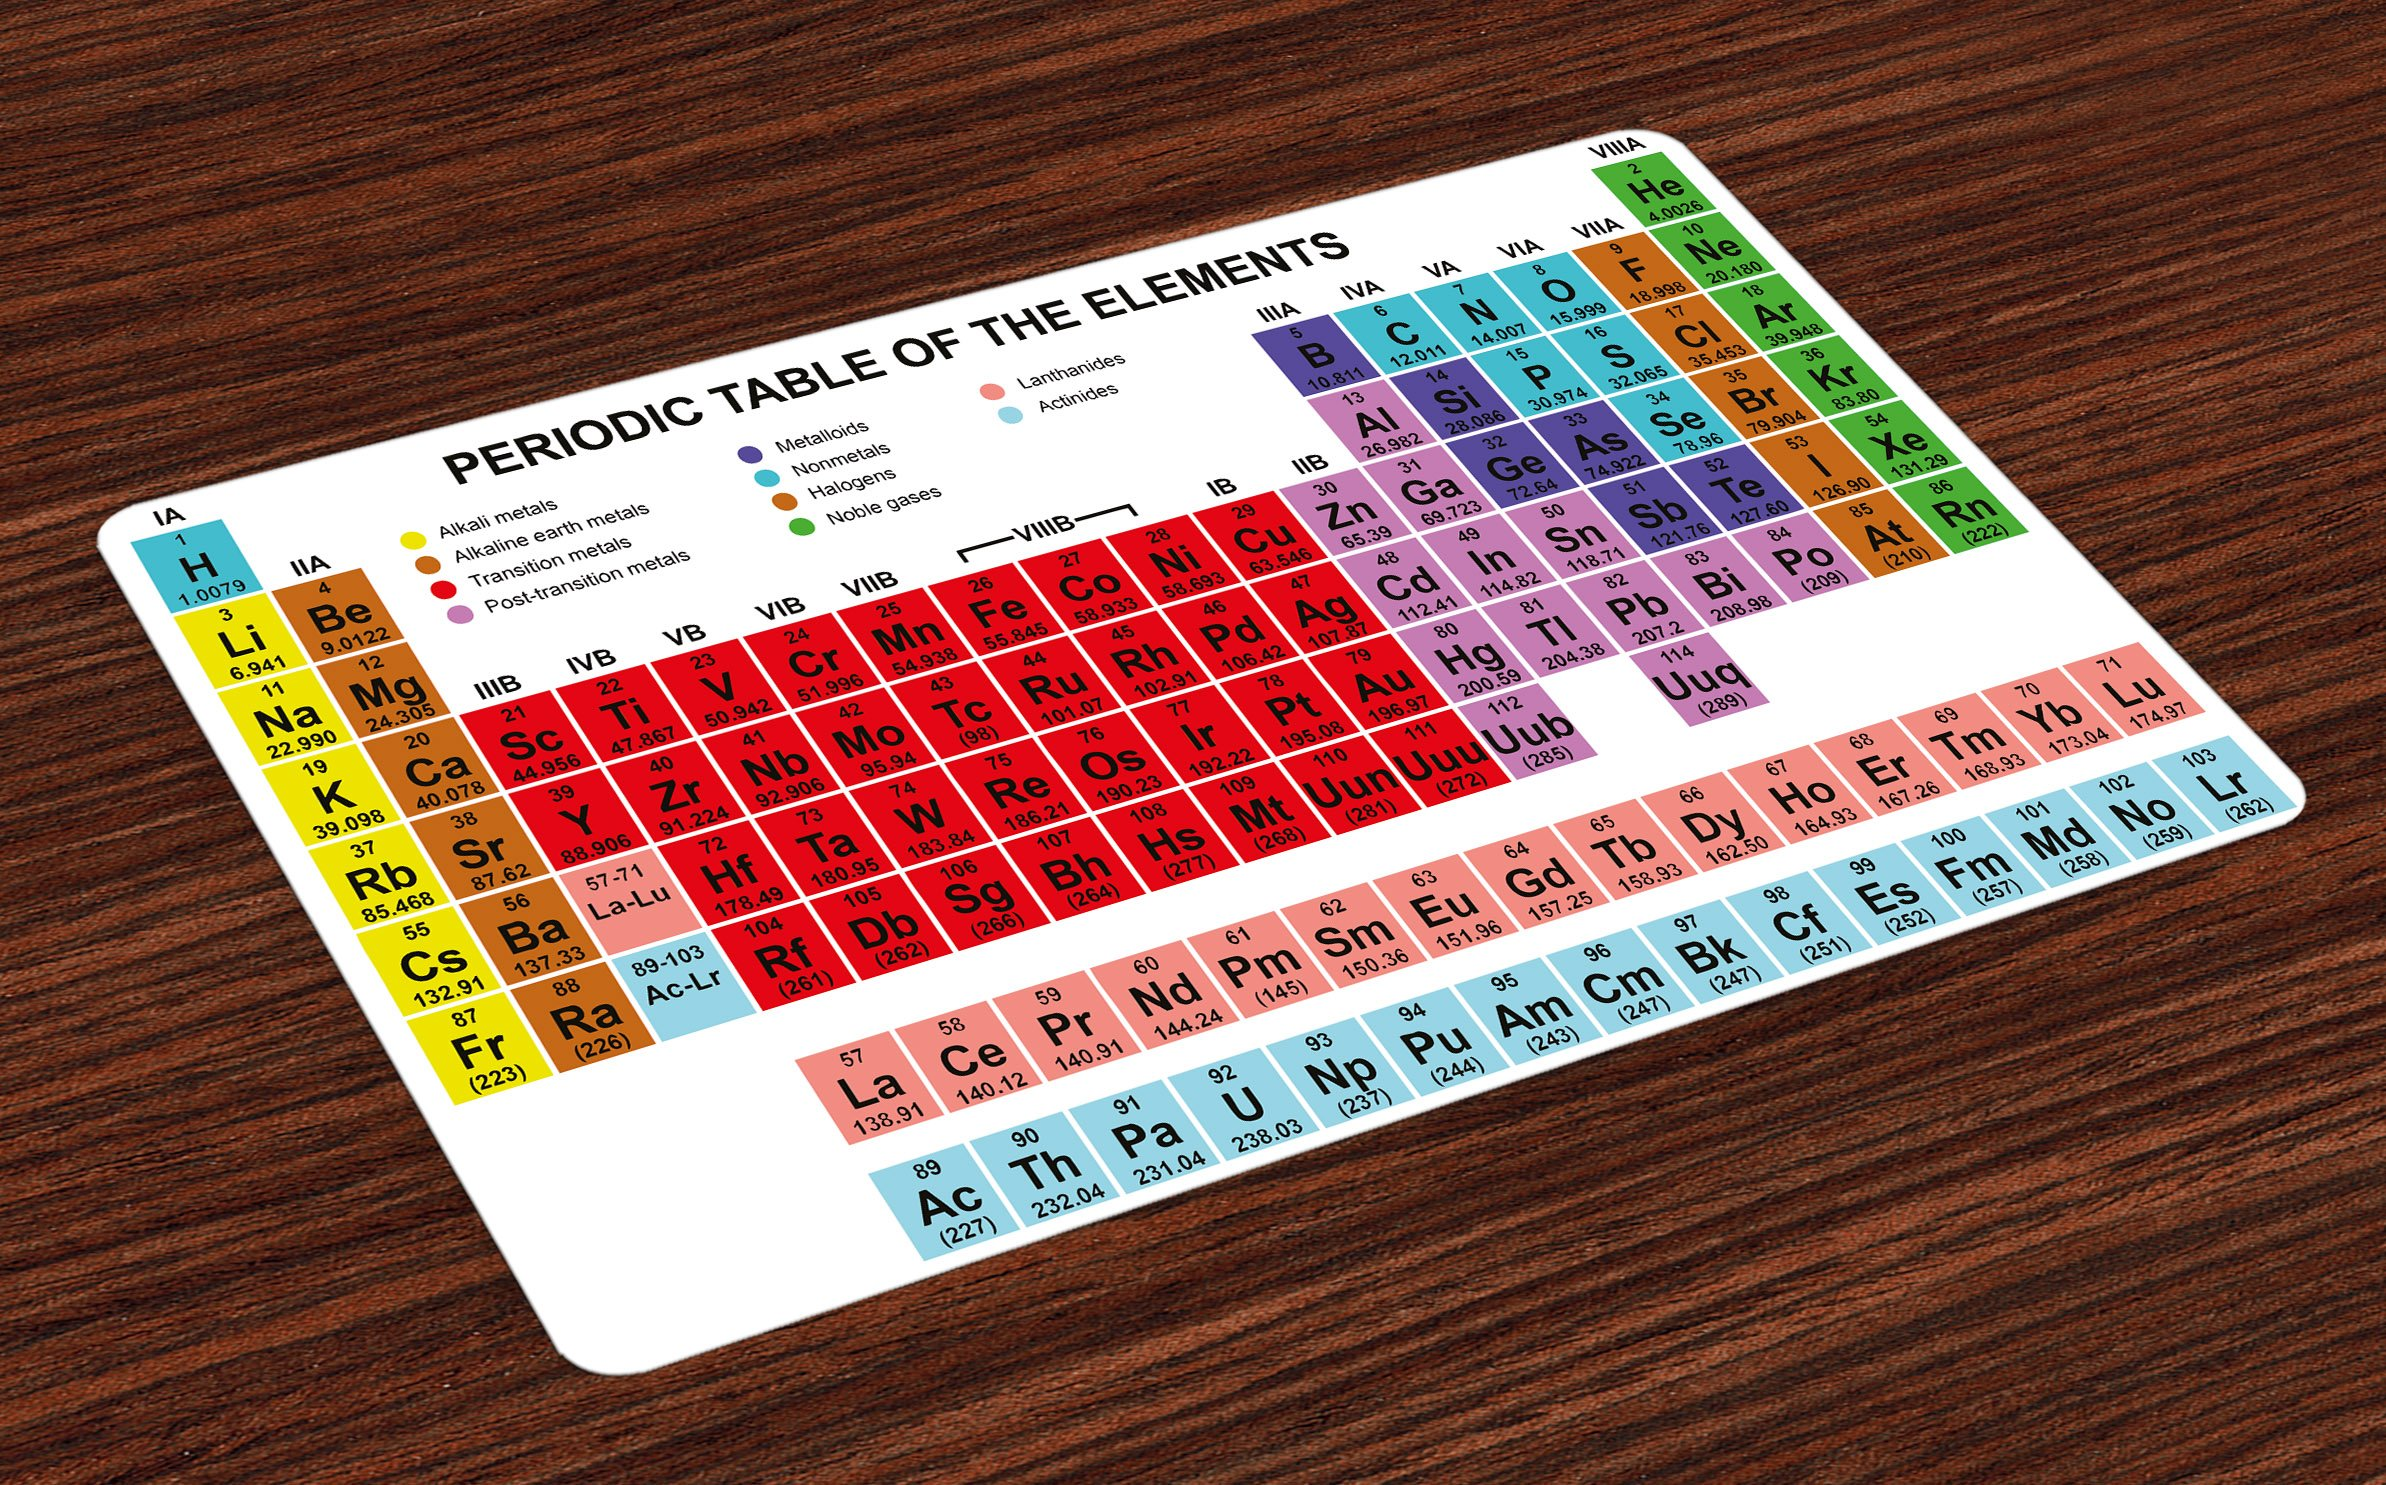 Ambesonne Periodic Table Place Mats Set of 4, Kids Children Educational Science Chemistry for School Students Teachers Art, Washable Fabric Placemats for Dining Room Kitchen Table Decor, Multicolor